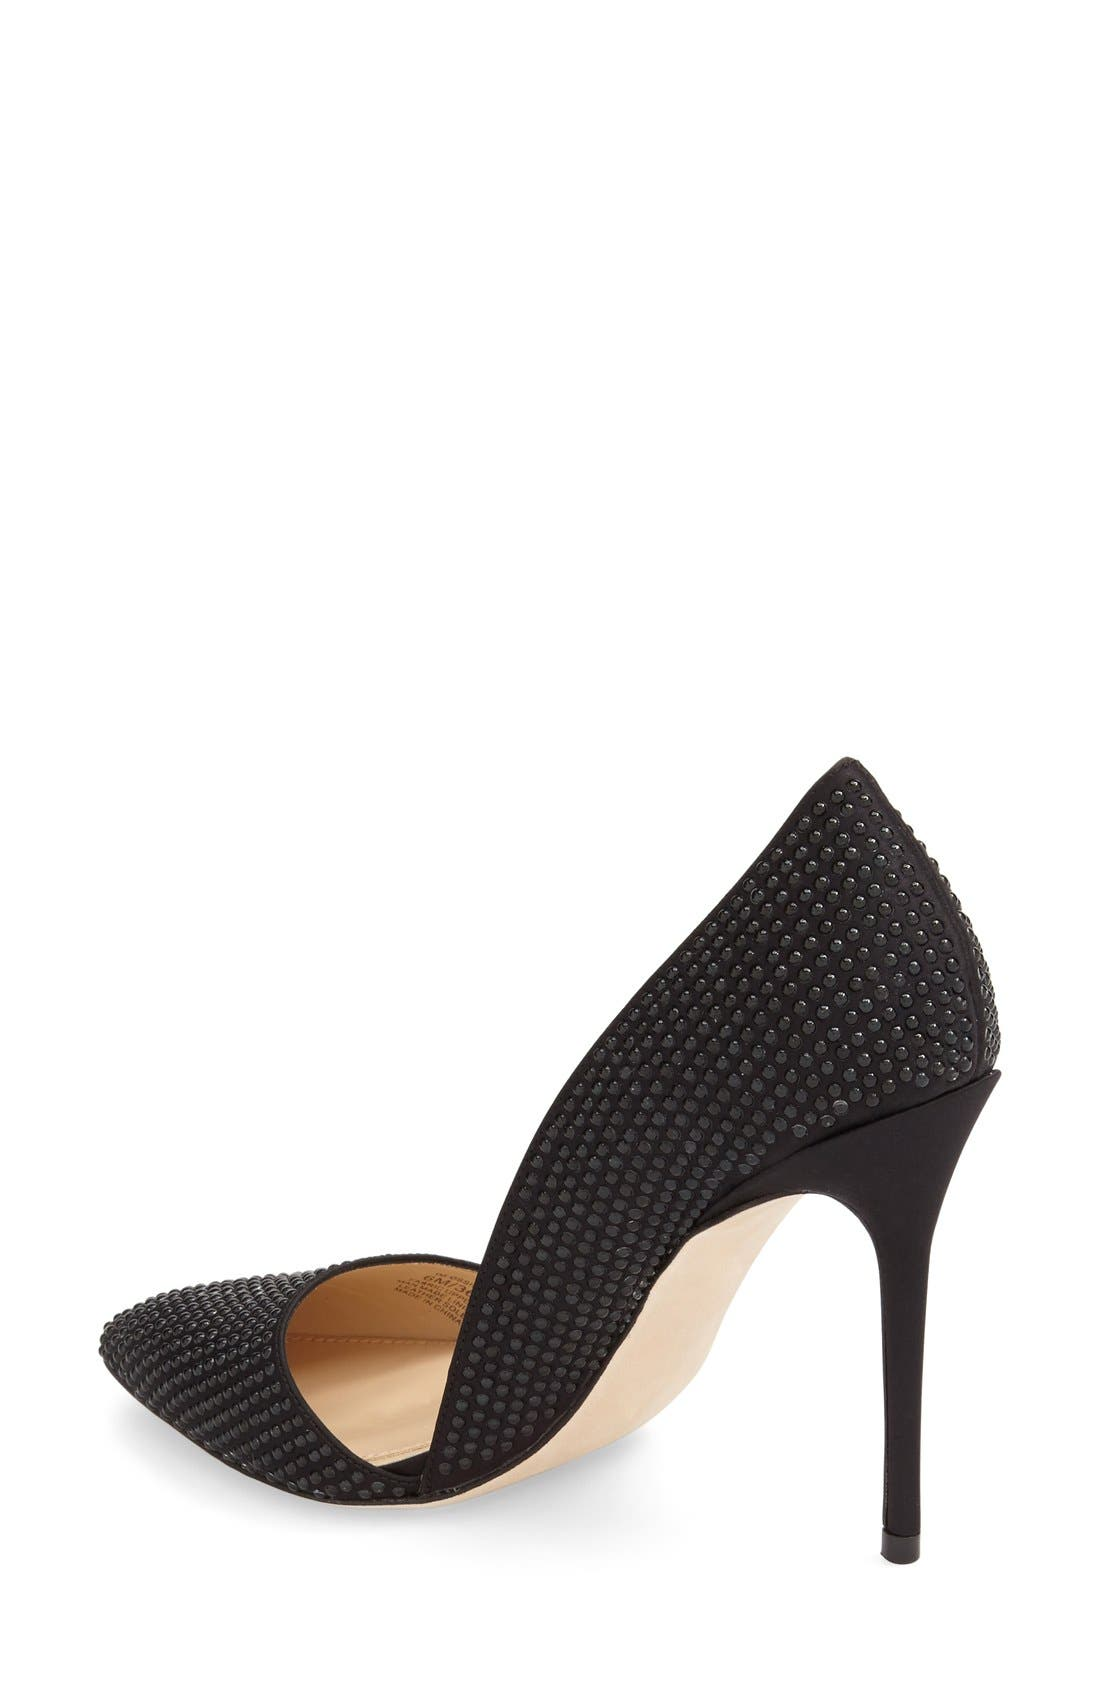 Imagine Vince Camuto 'Ossie' d'Orsay Pump,                             Alternate thumbnail 2, color,                             001